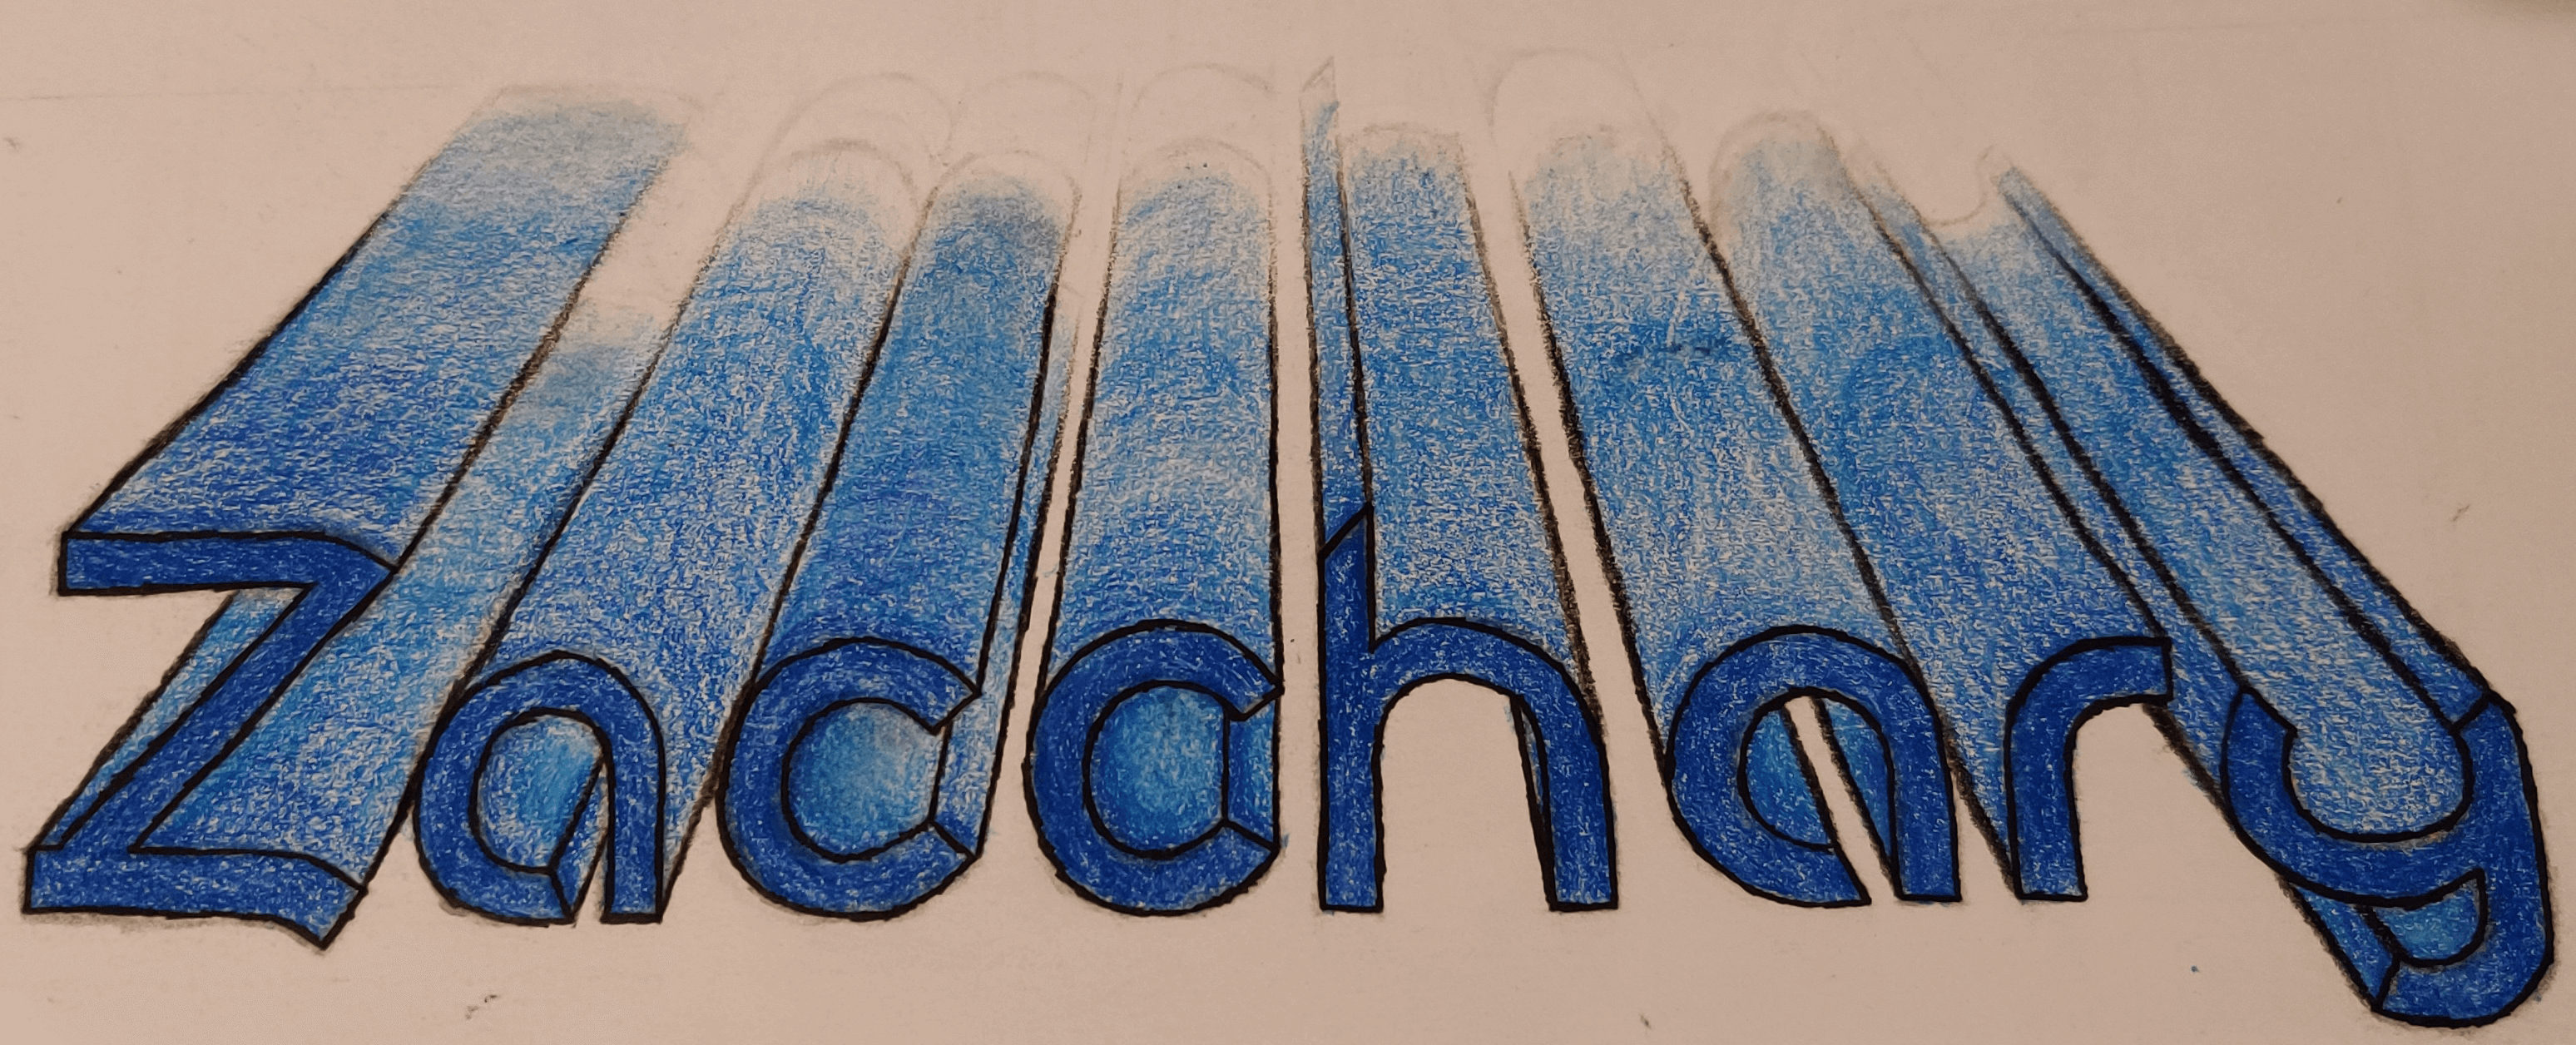 A 3-dimensional perspective drawing of my first name in blue